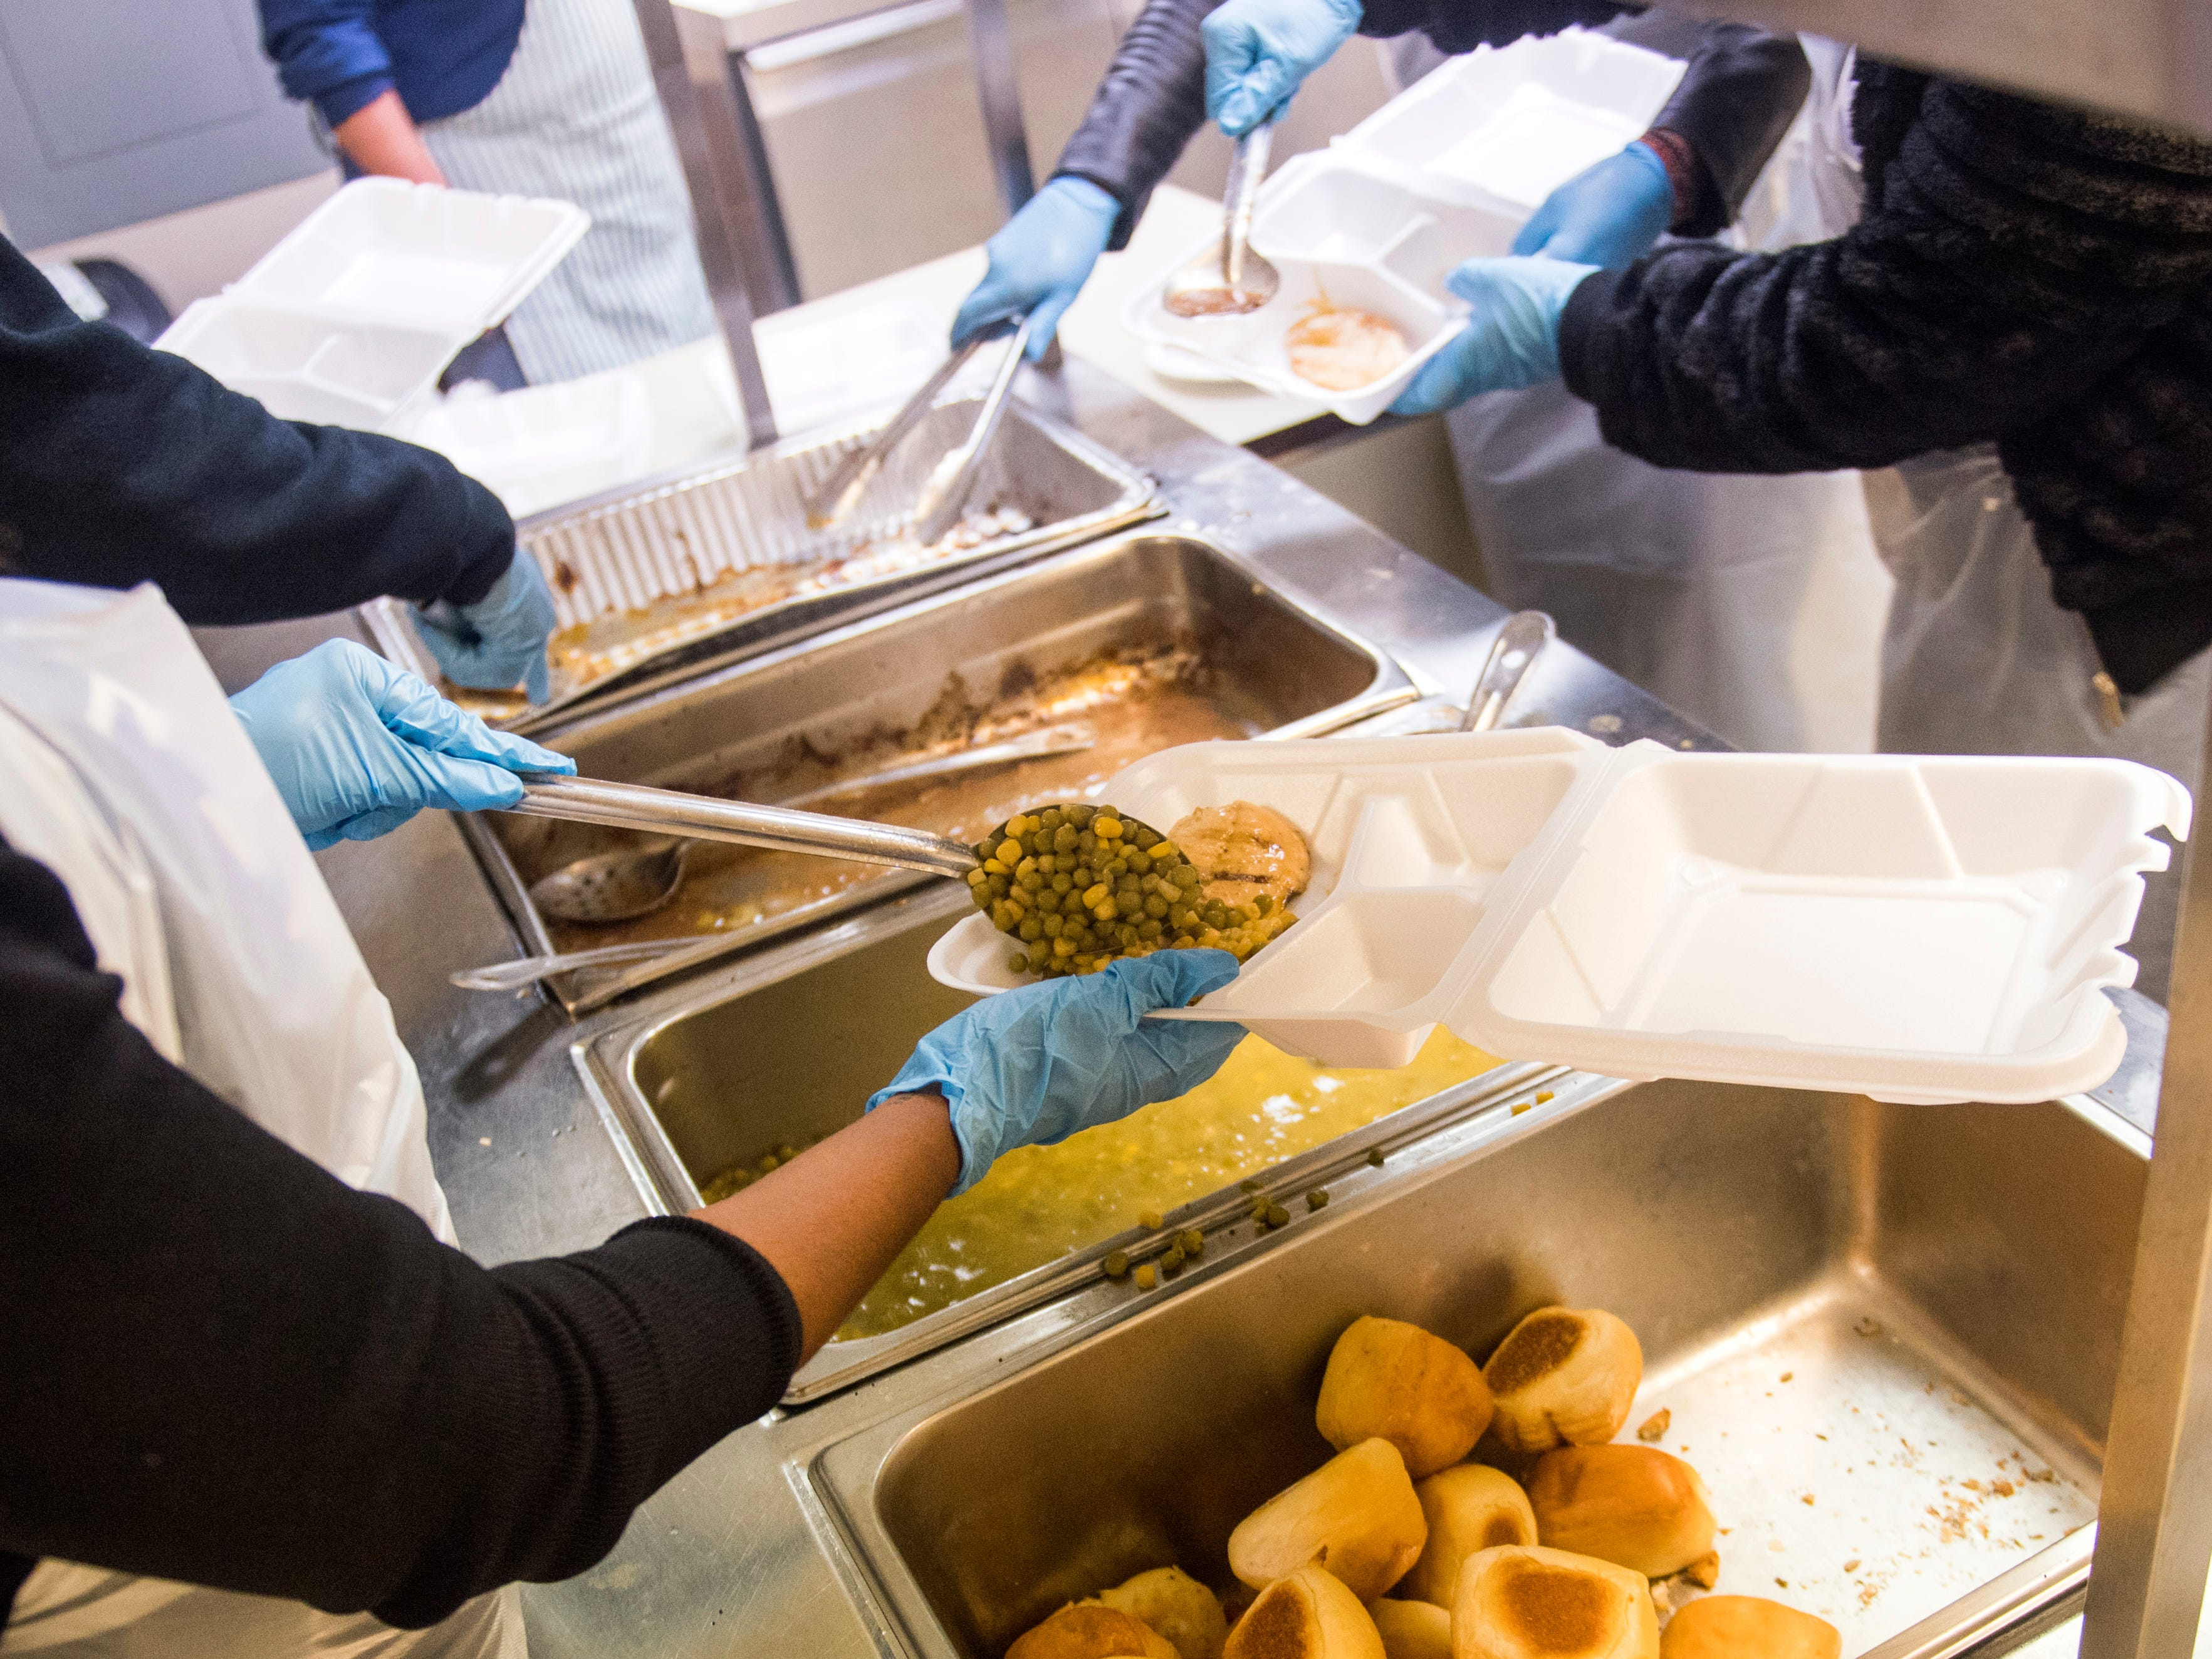 Phi Delta Epsilon medical fraternity members from Ross University School of Medicine prepare plates of food at The Love Kitchen in Knoxville on Wednesday, November 14, 2018.